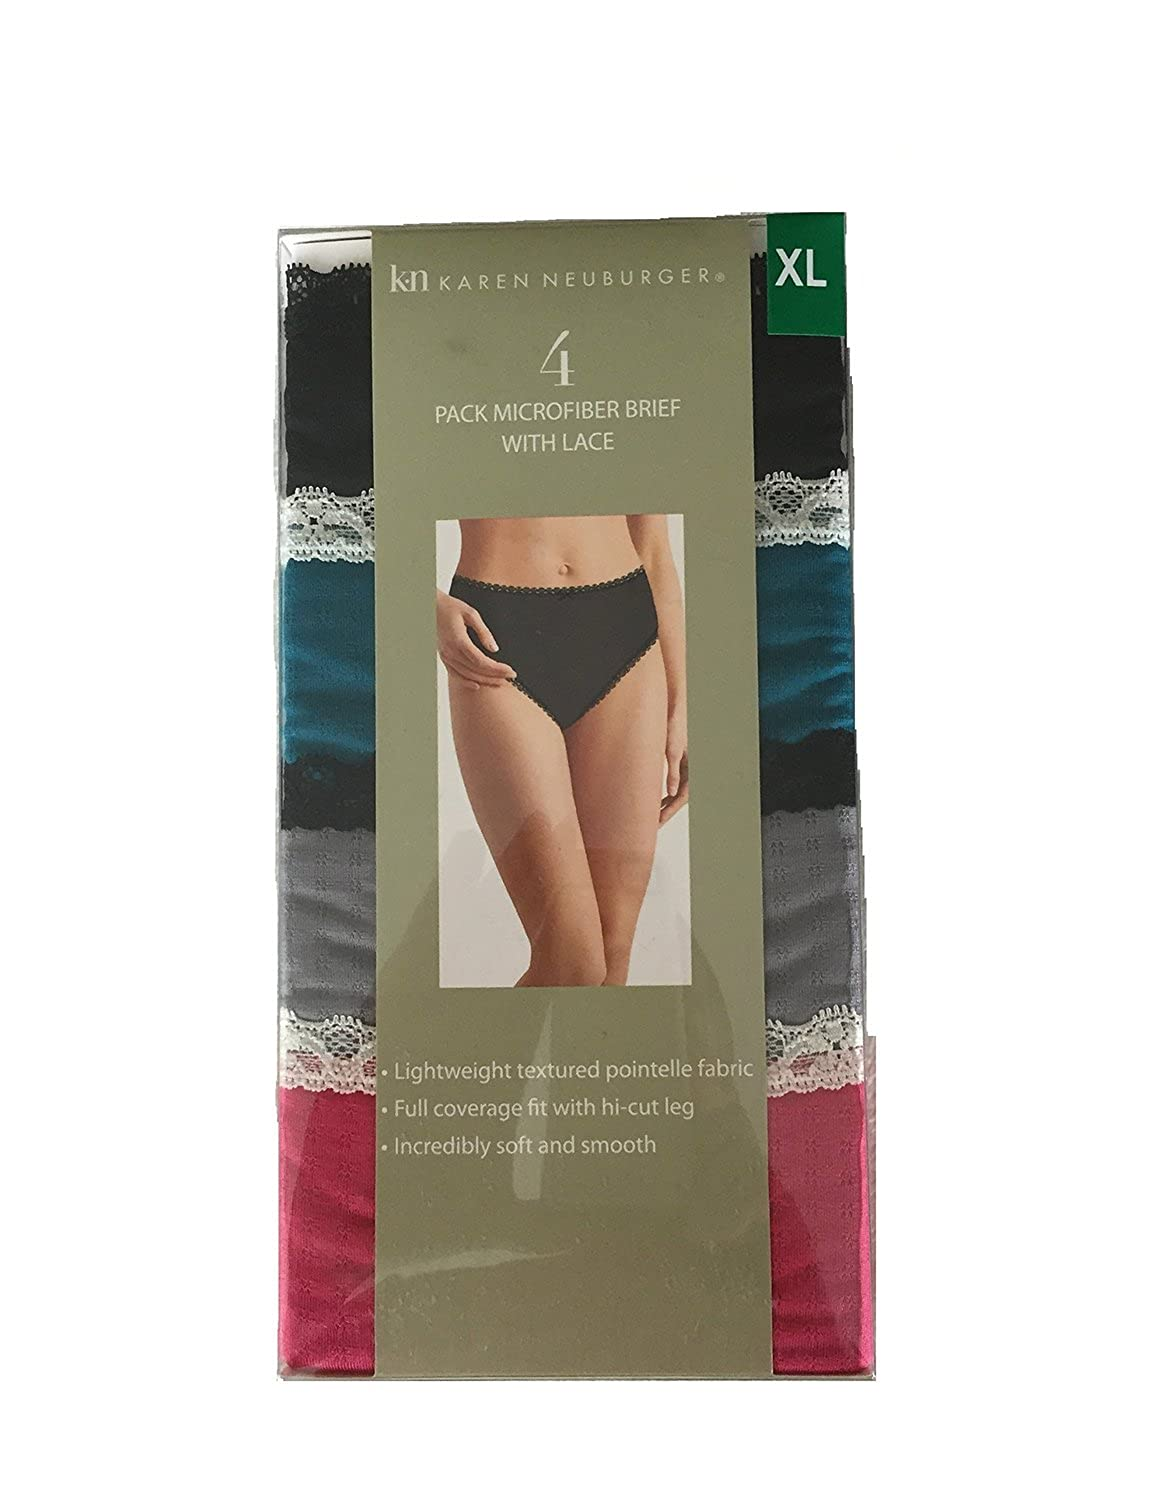 Karen Neuberger Microfiber Brief With Lace 4 Pk Bright, Medium